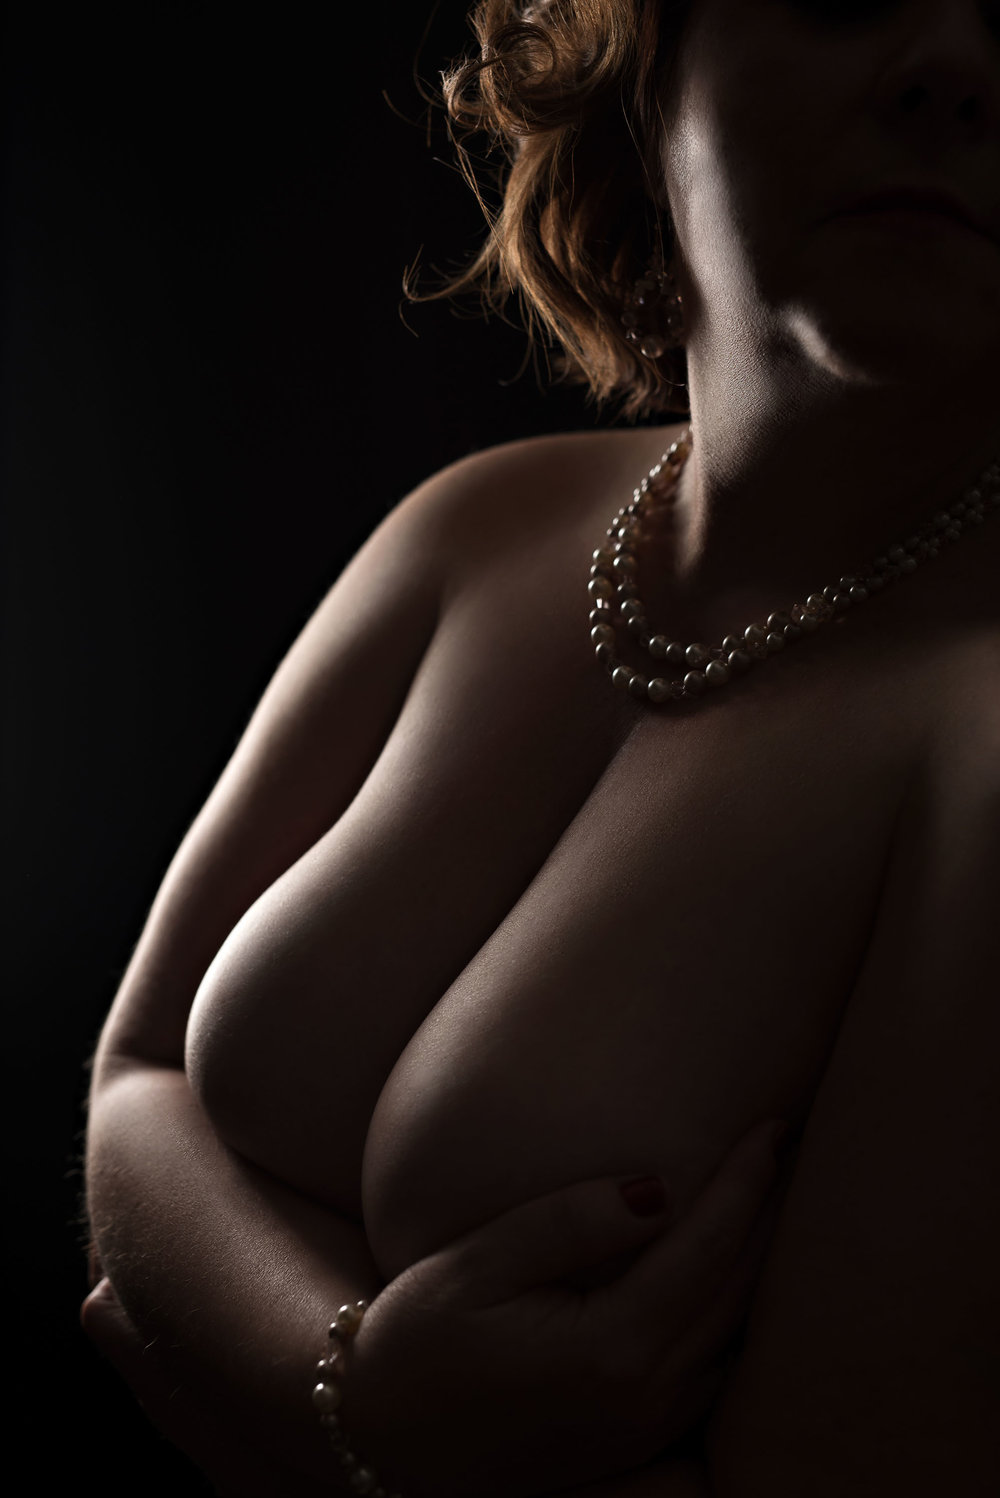 curvy woman artistic nude photography